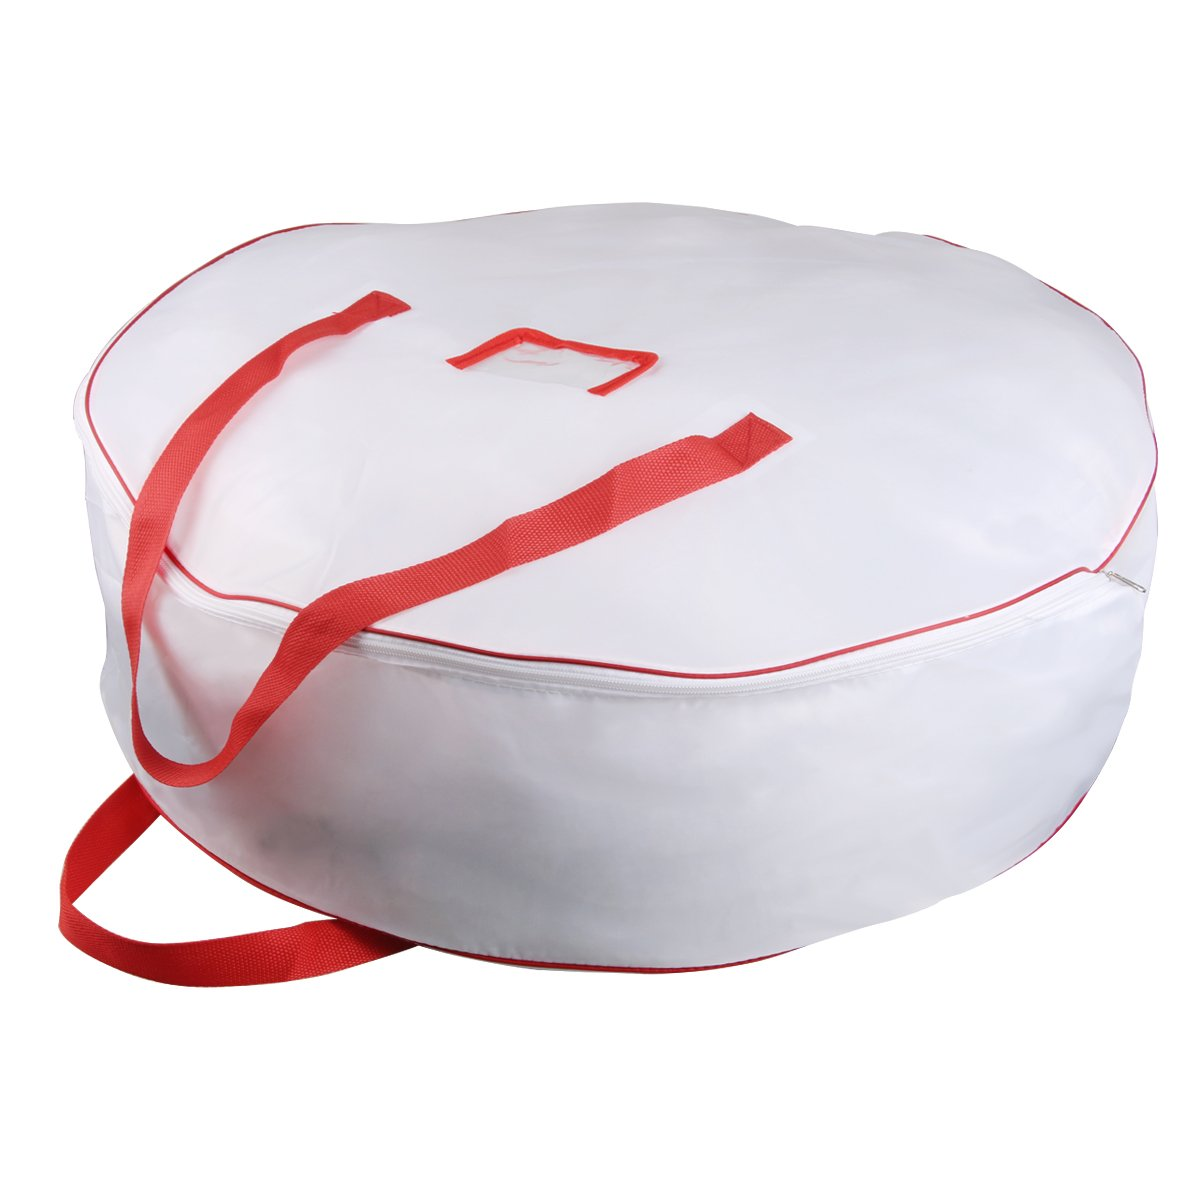 Christmas Wreath Storage Bag - Xmas Large Wreath Container - Reinforced Wide Handle and Double Sleek Zipper - Heavy Duty Protect Your Holiday Advent, Garland, Party Decorations and Ornaments 30'',White by TQS